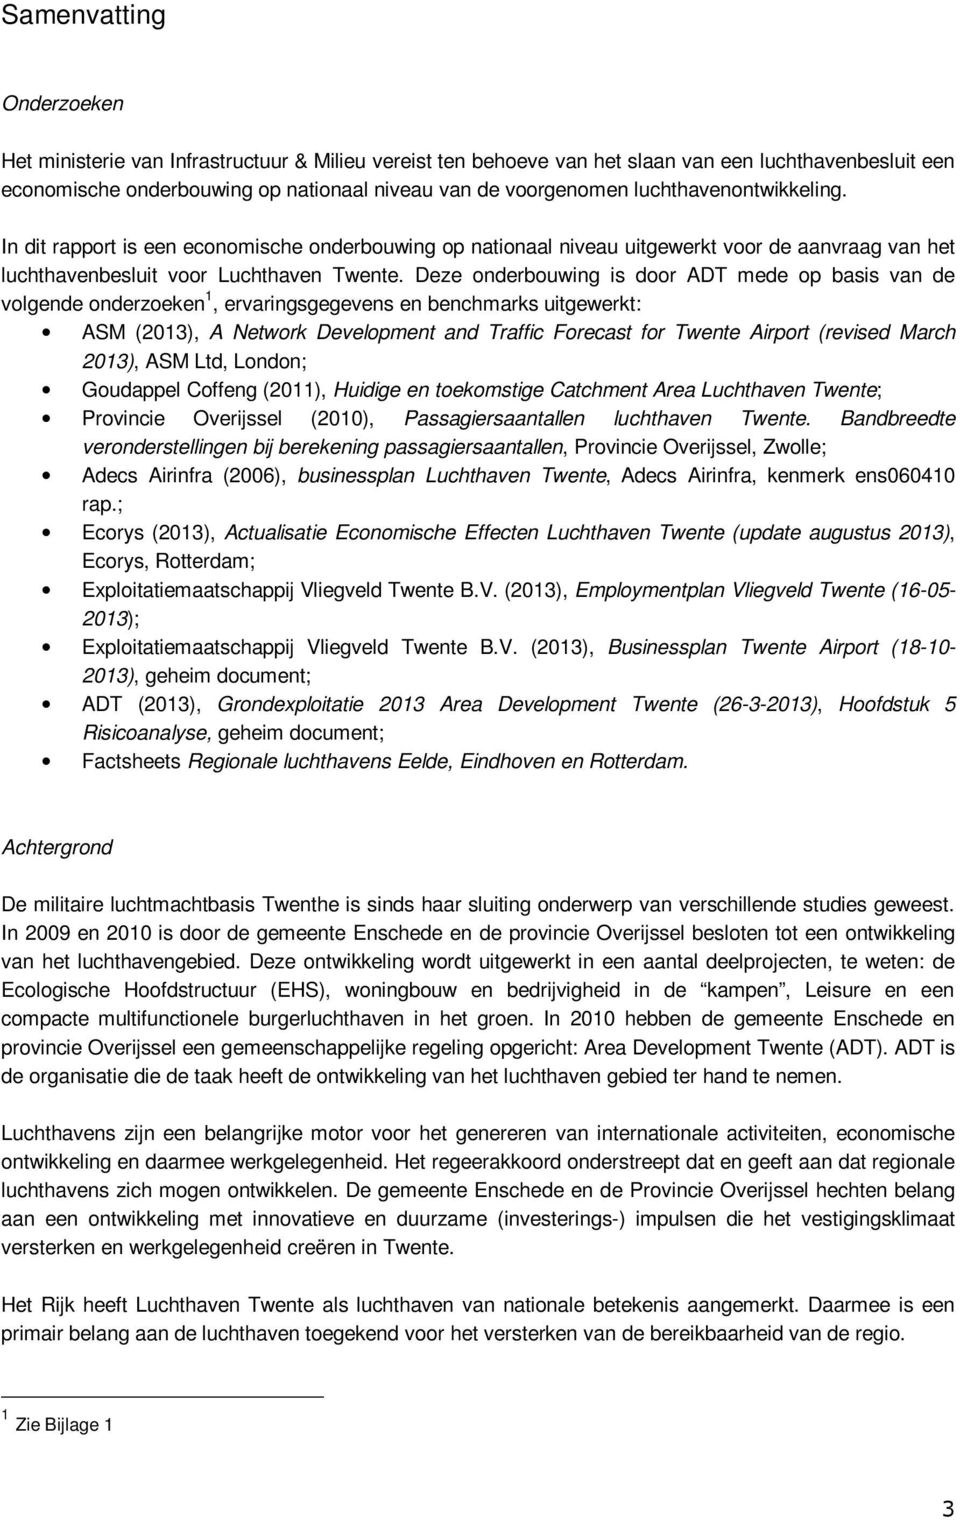 Deze onderbouwing is door ADT mede op basis van de volgende onderzoeken 1, ervaringsgegevens en benchmarks uitgewerkt: ASM (2013), A Network Development and Traffic Forecast for Twente Airport